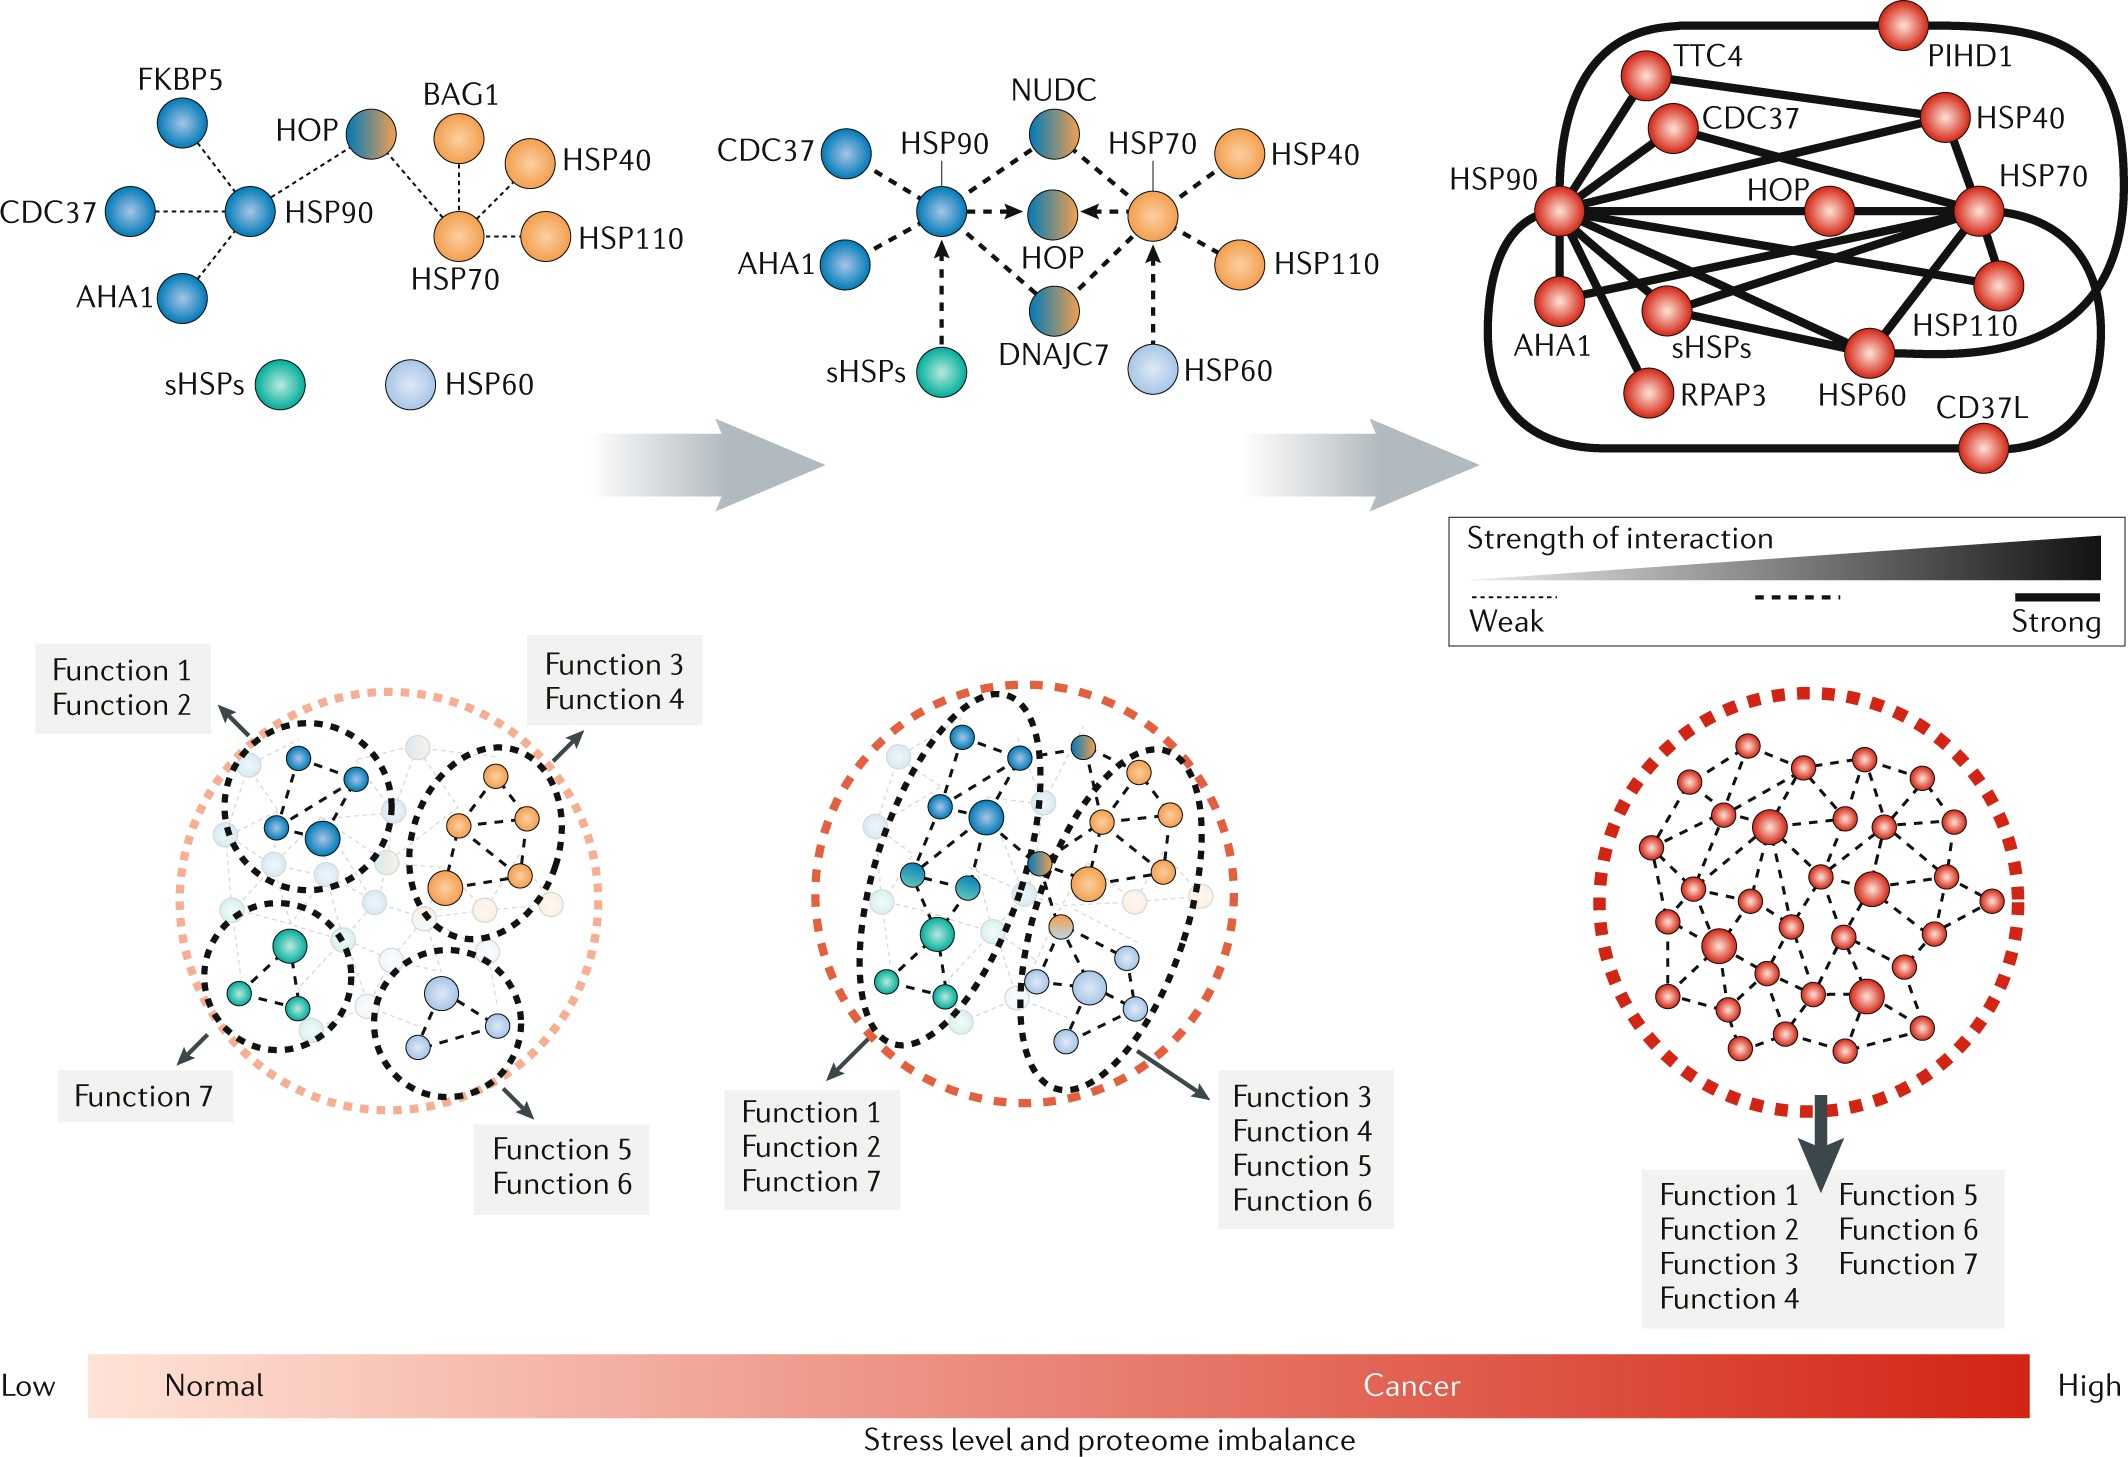 Adapting To Stress Chaperome Networks In Cancer Nature Reviews Hendershot Wiring Diagram